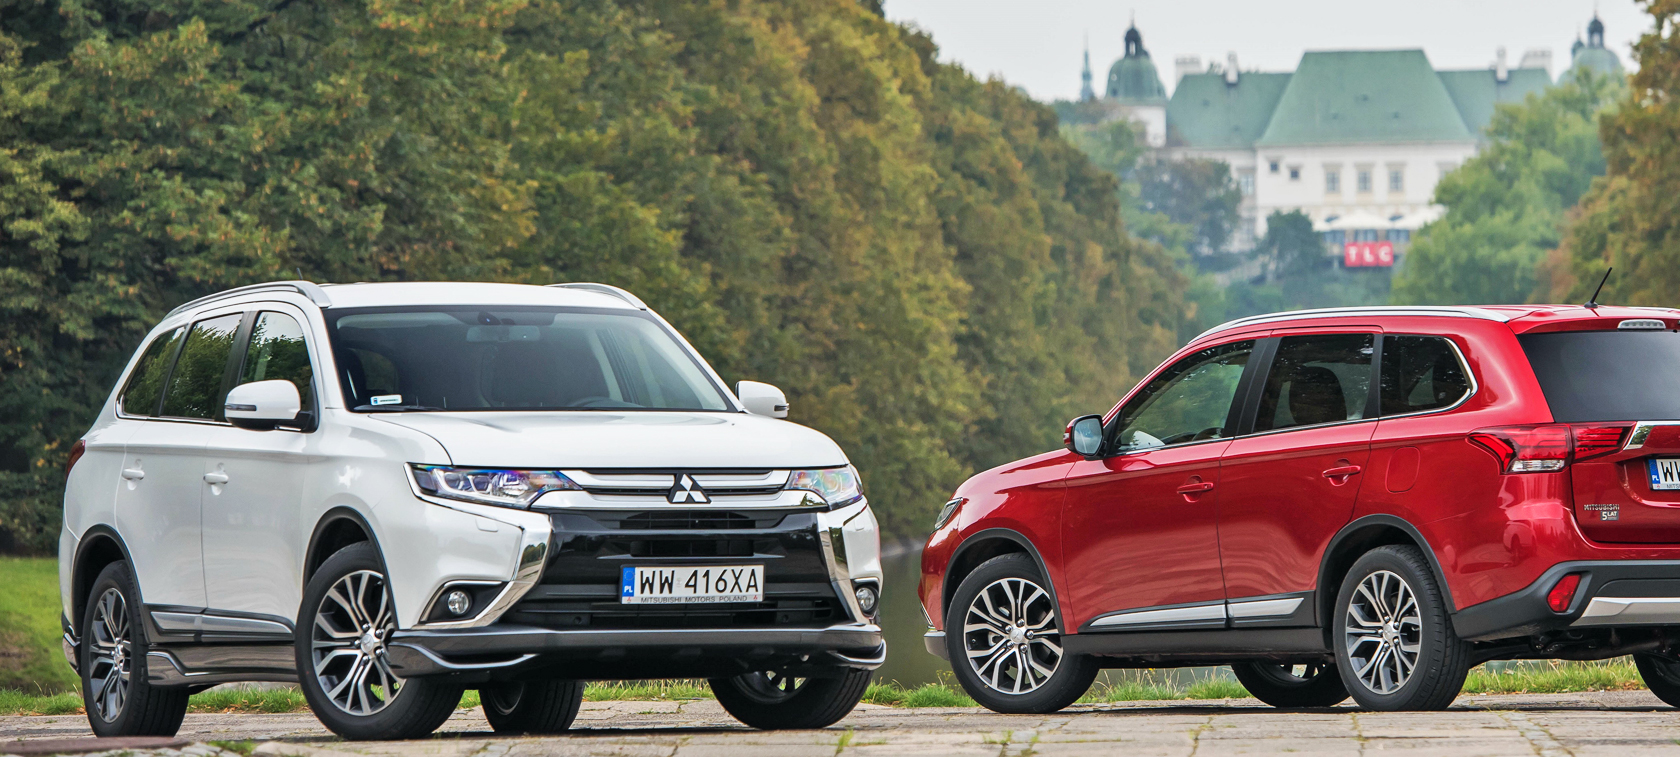 Mitsubishi chooses BRC in Italy